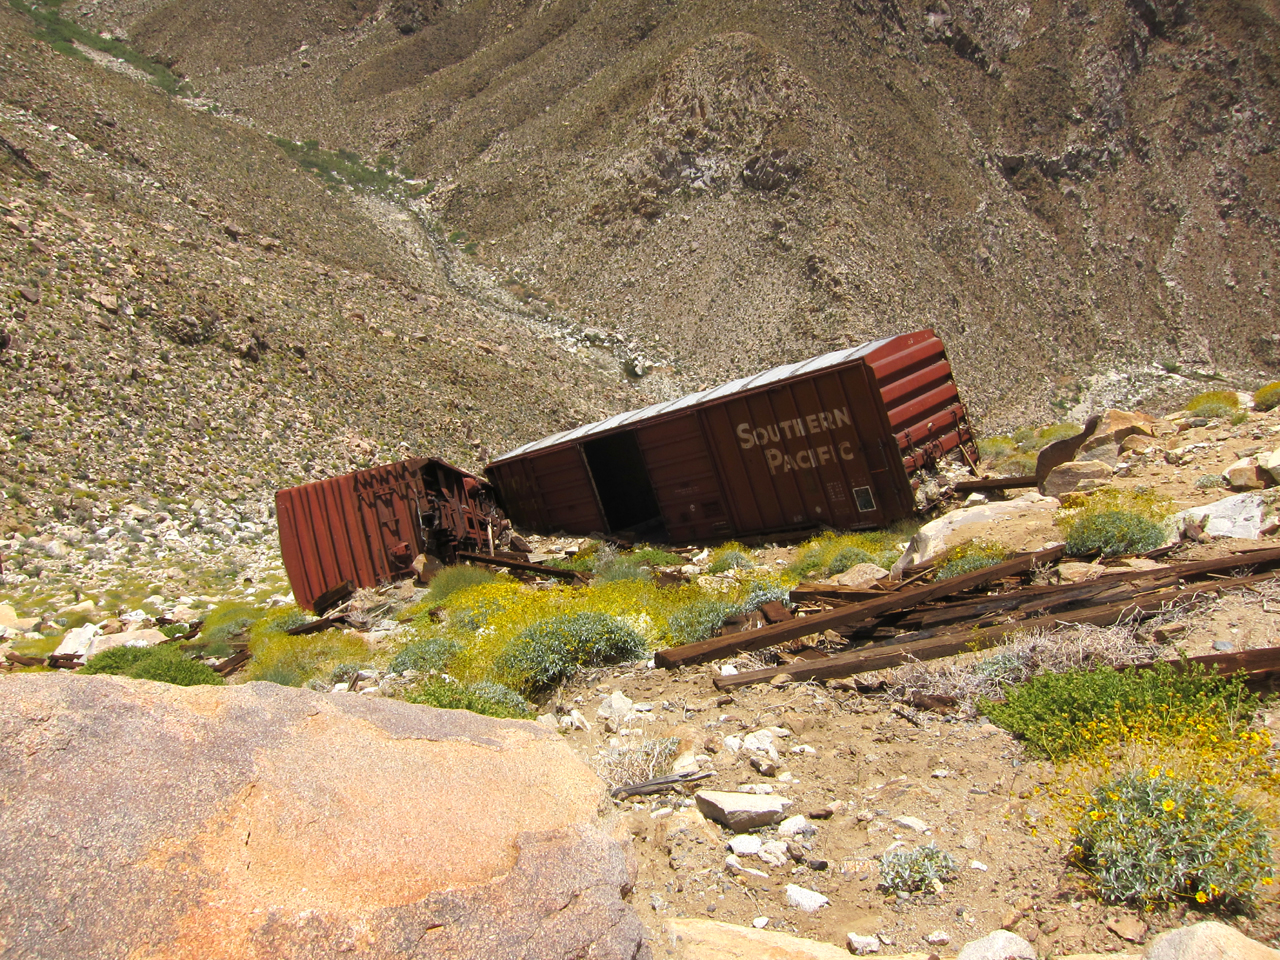 Old box cars that were apparently pushed off the mountain